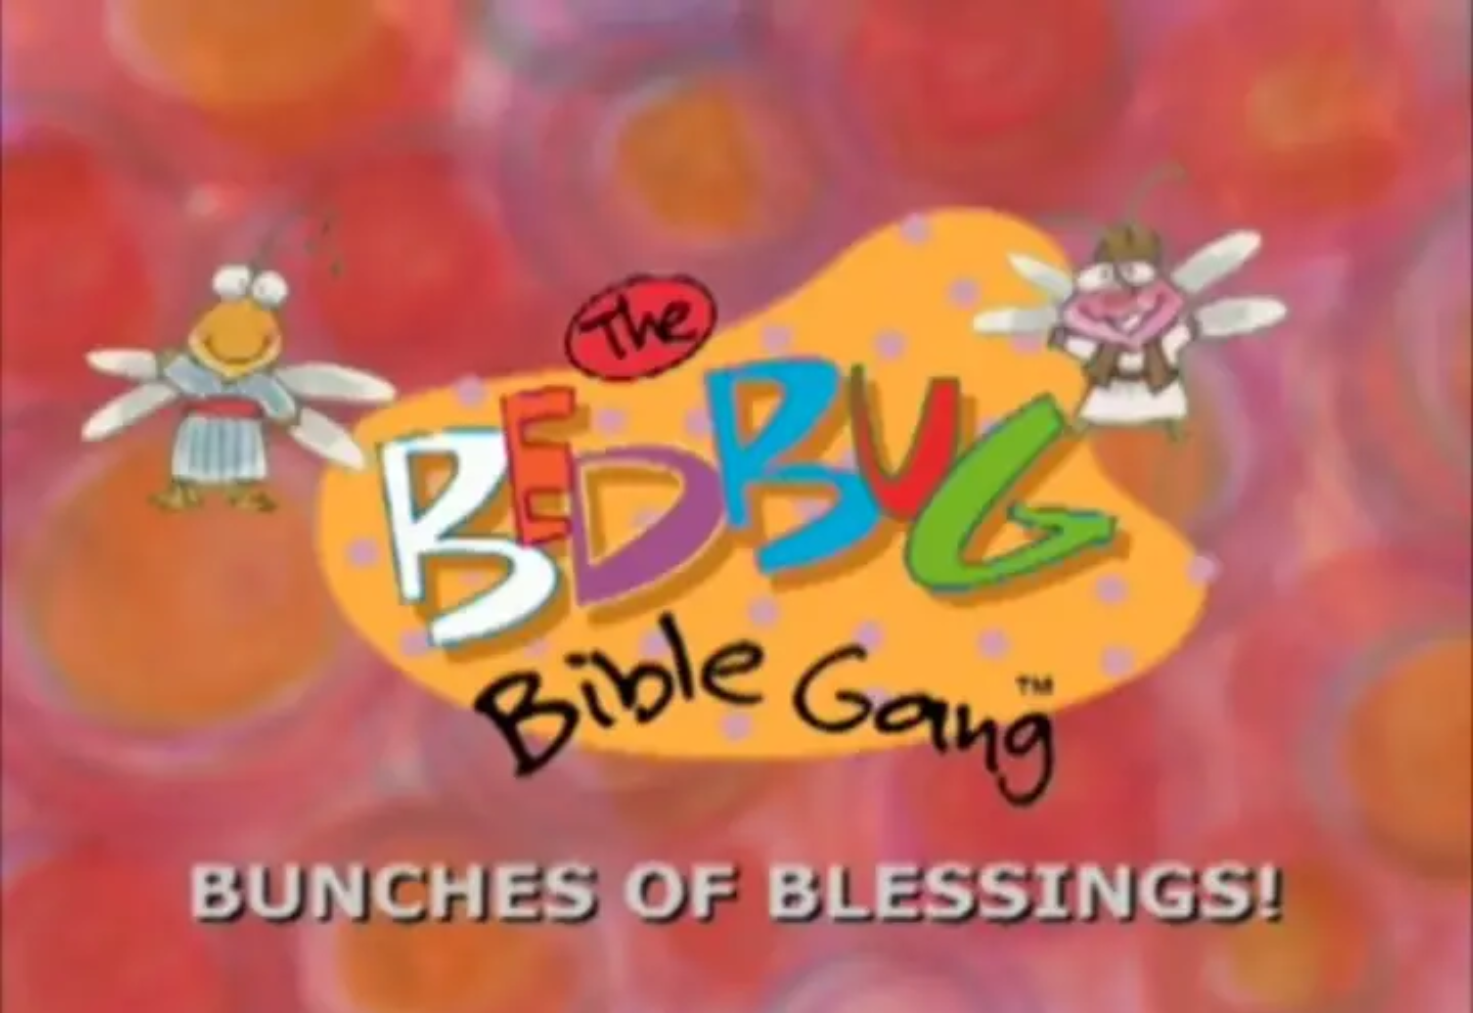 Bedbug Bible Gang - Bunches Of Blessings!